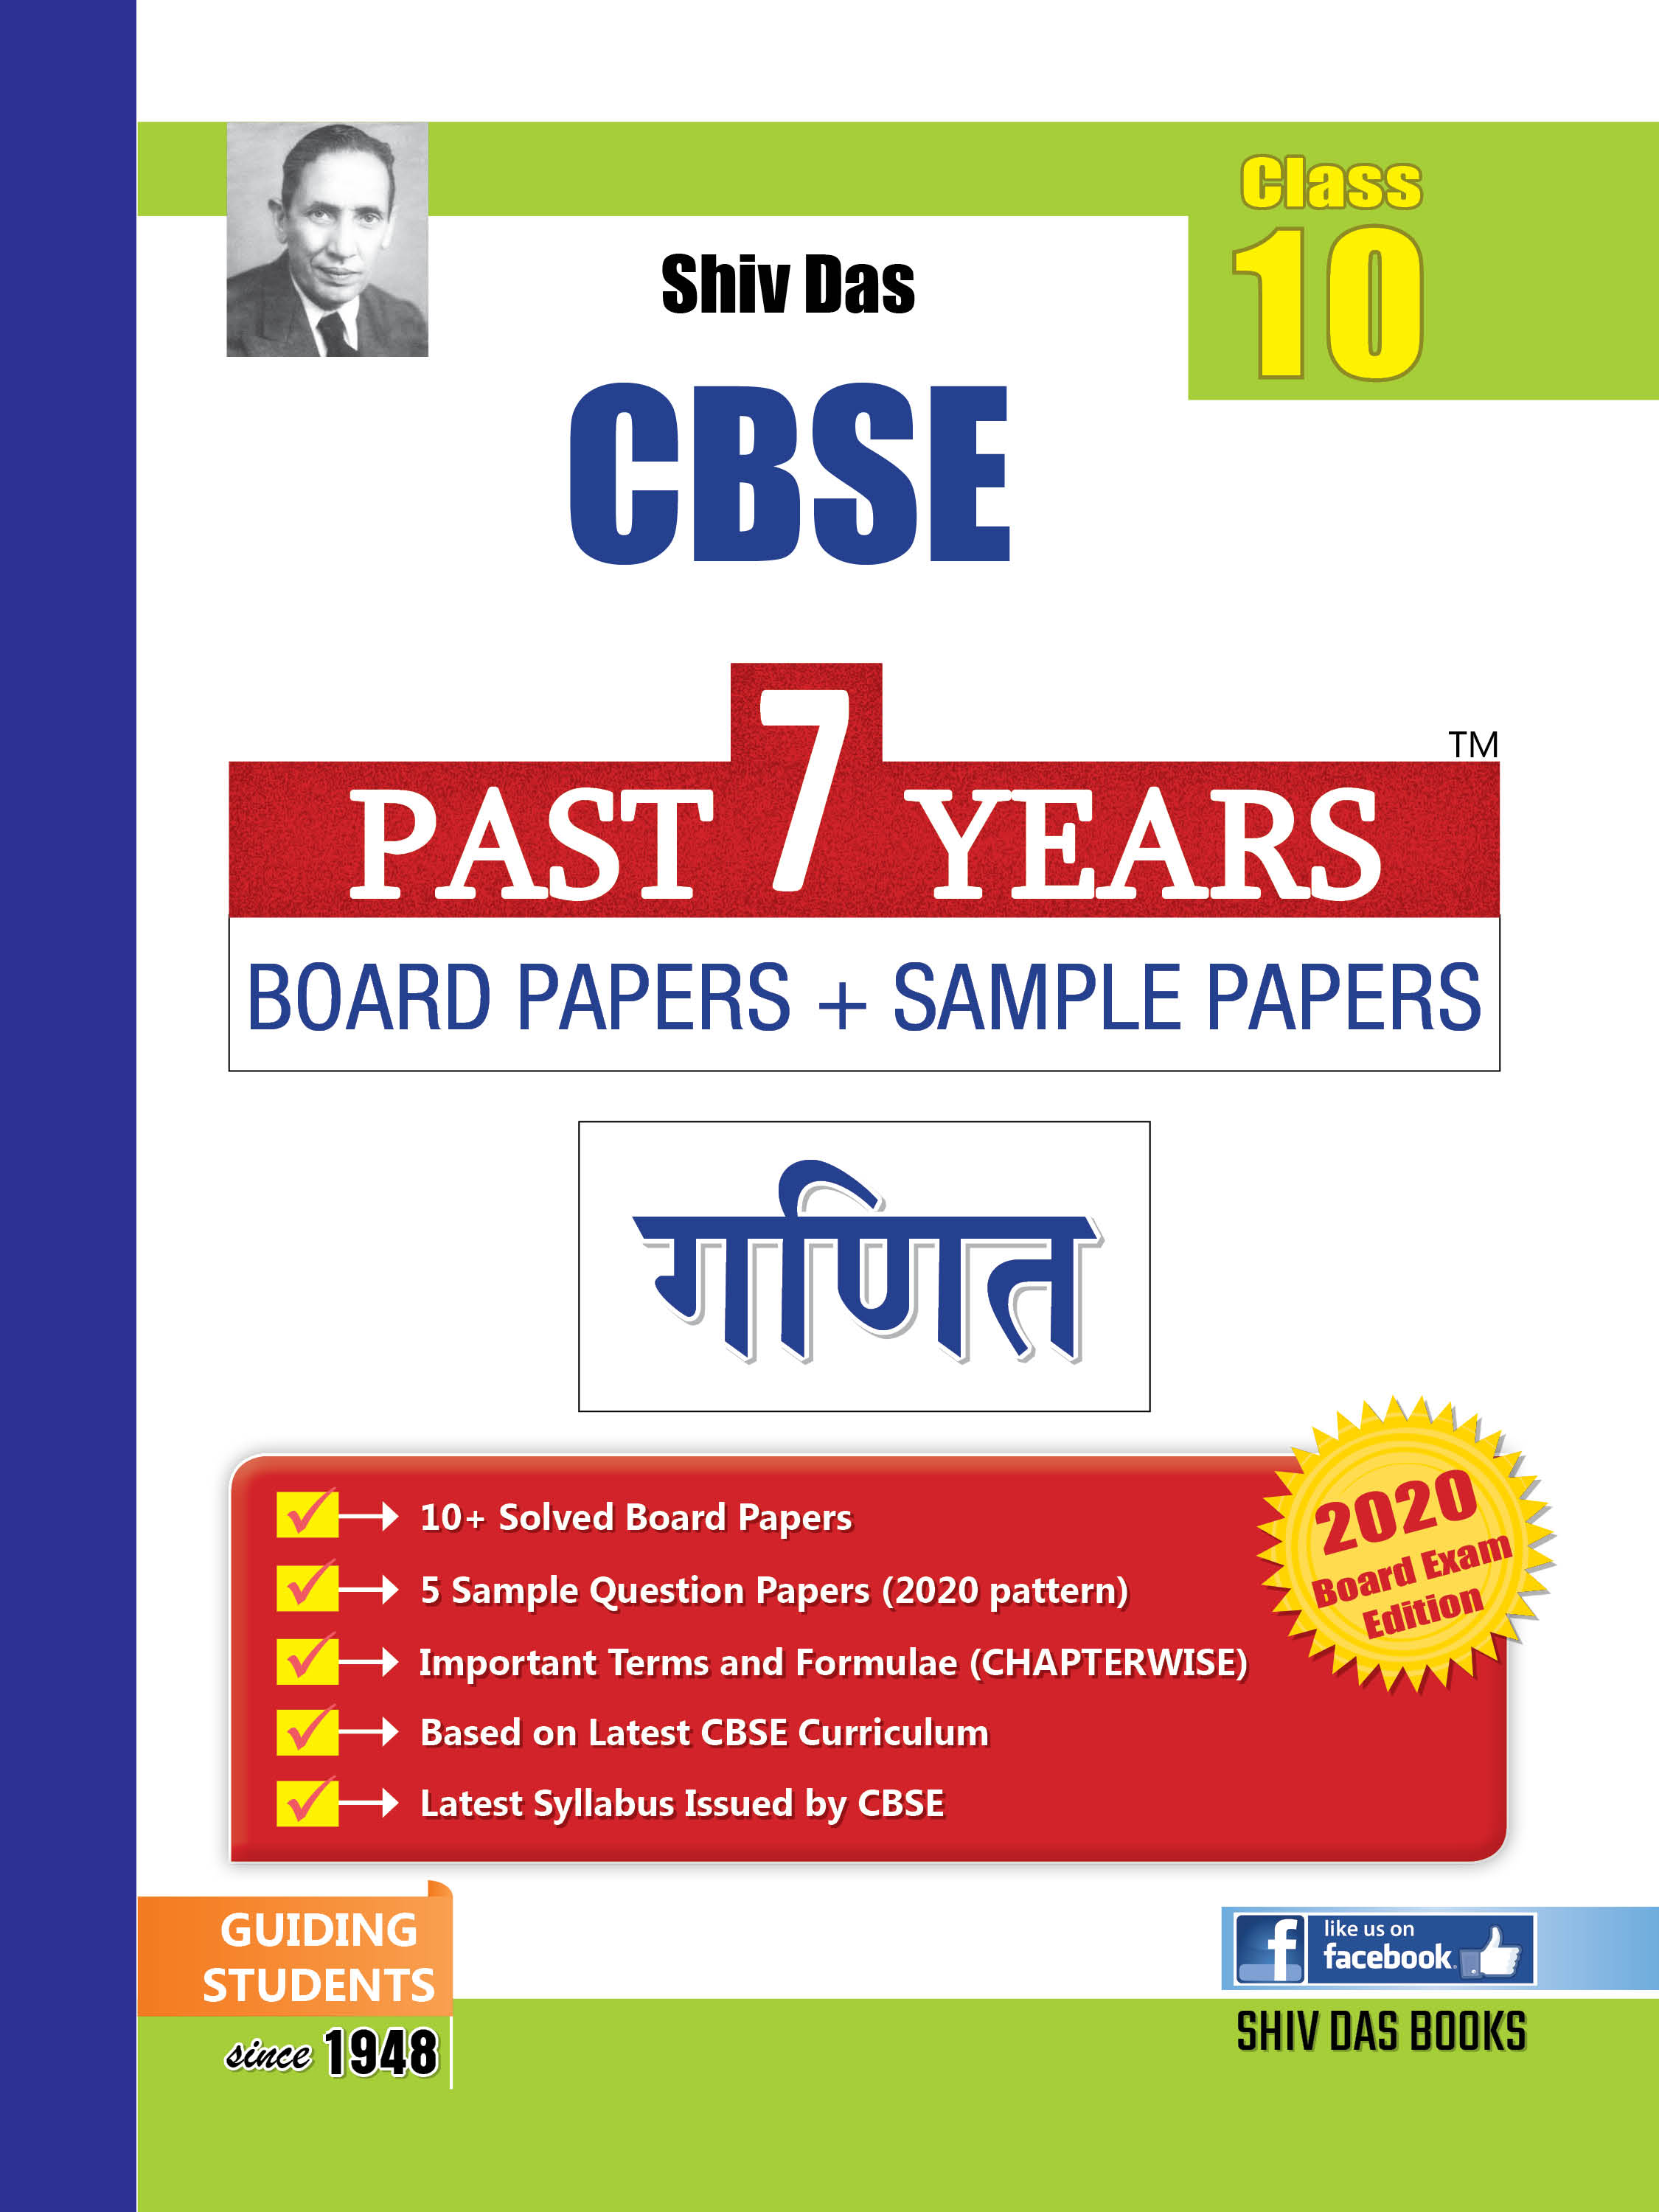 CBSE Past 7 Years Solved Board Papers+Sample Papers for Class 10 Ganit (2020 Board Exam Edition)